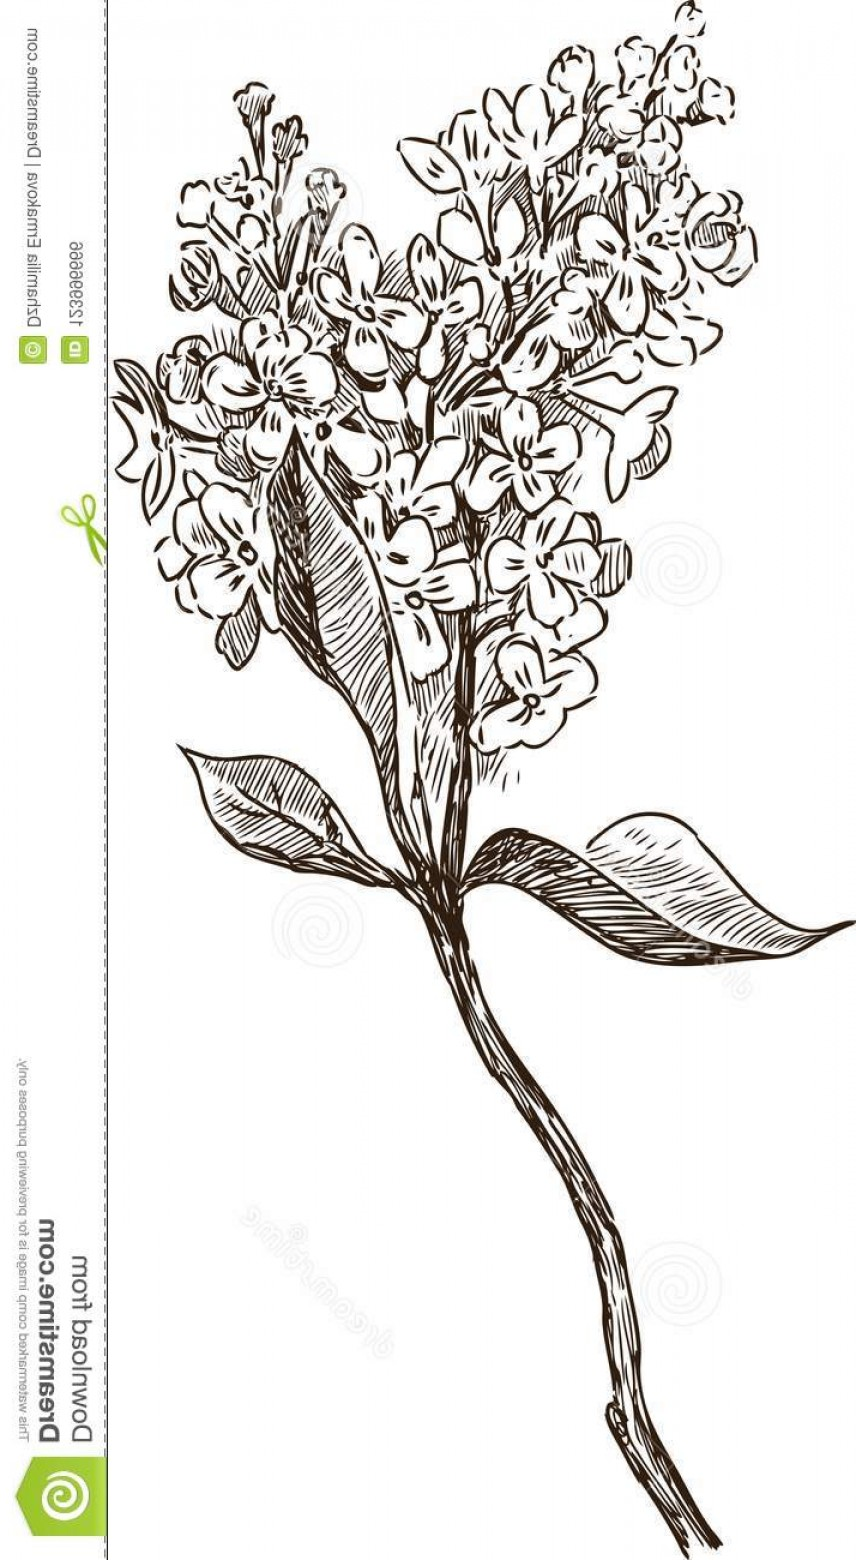 Lilac Vector Drawing: Vector Drawing Bunch Blooming Lilac Sketch Flowering Twig Lilac Image